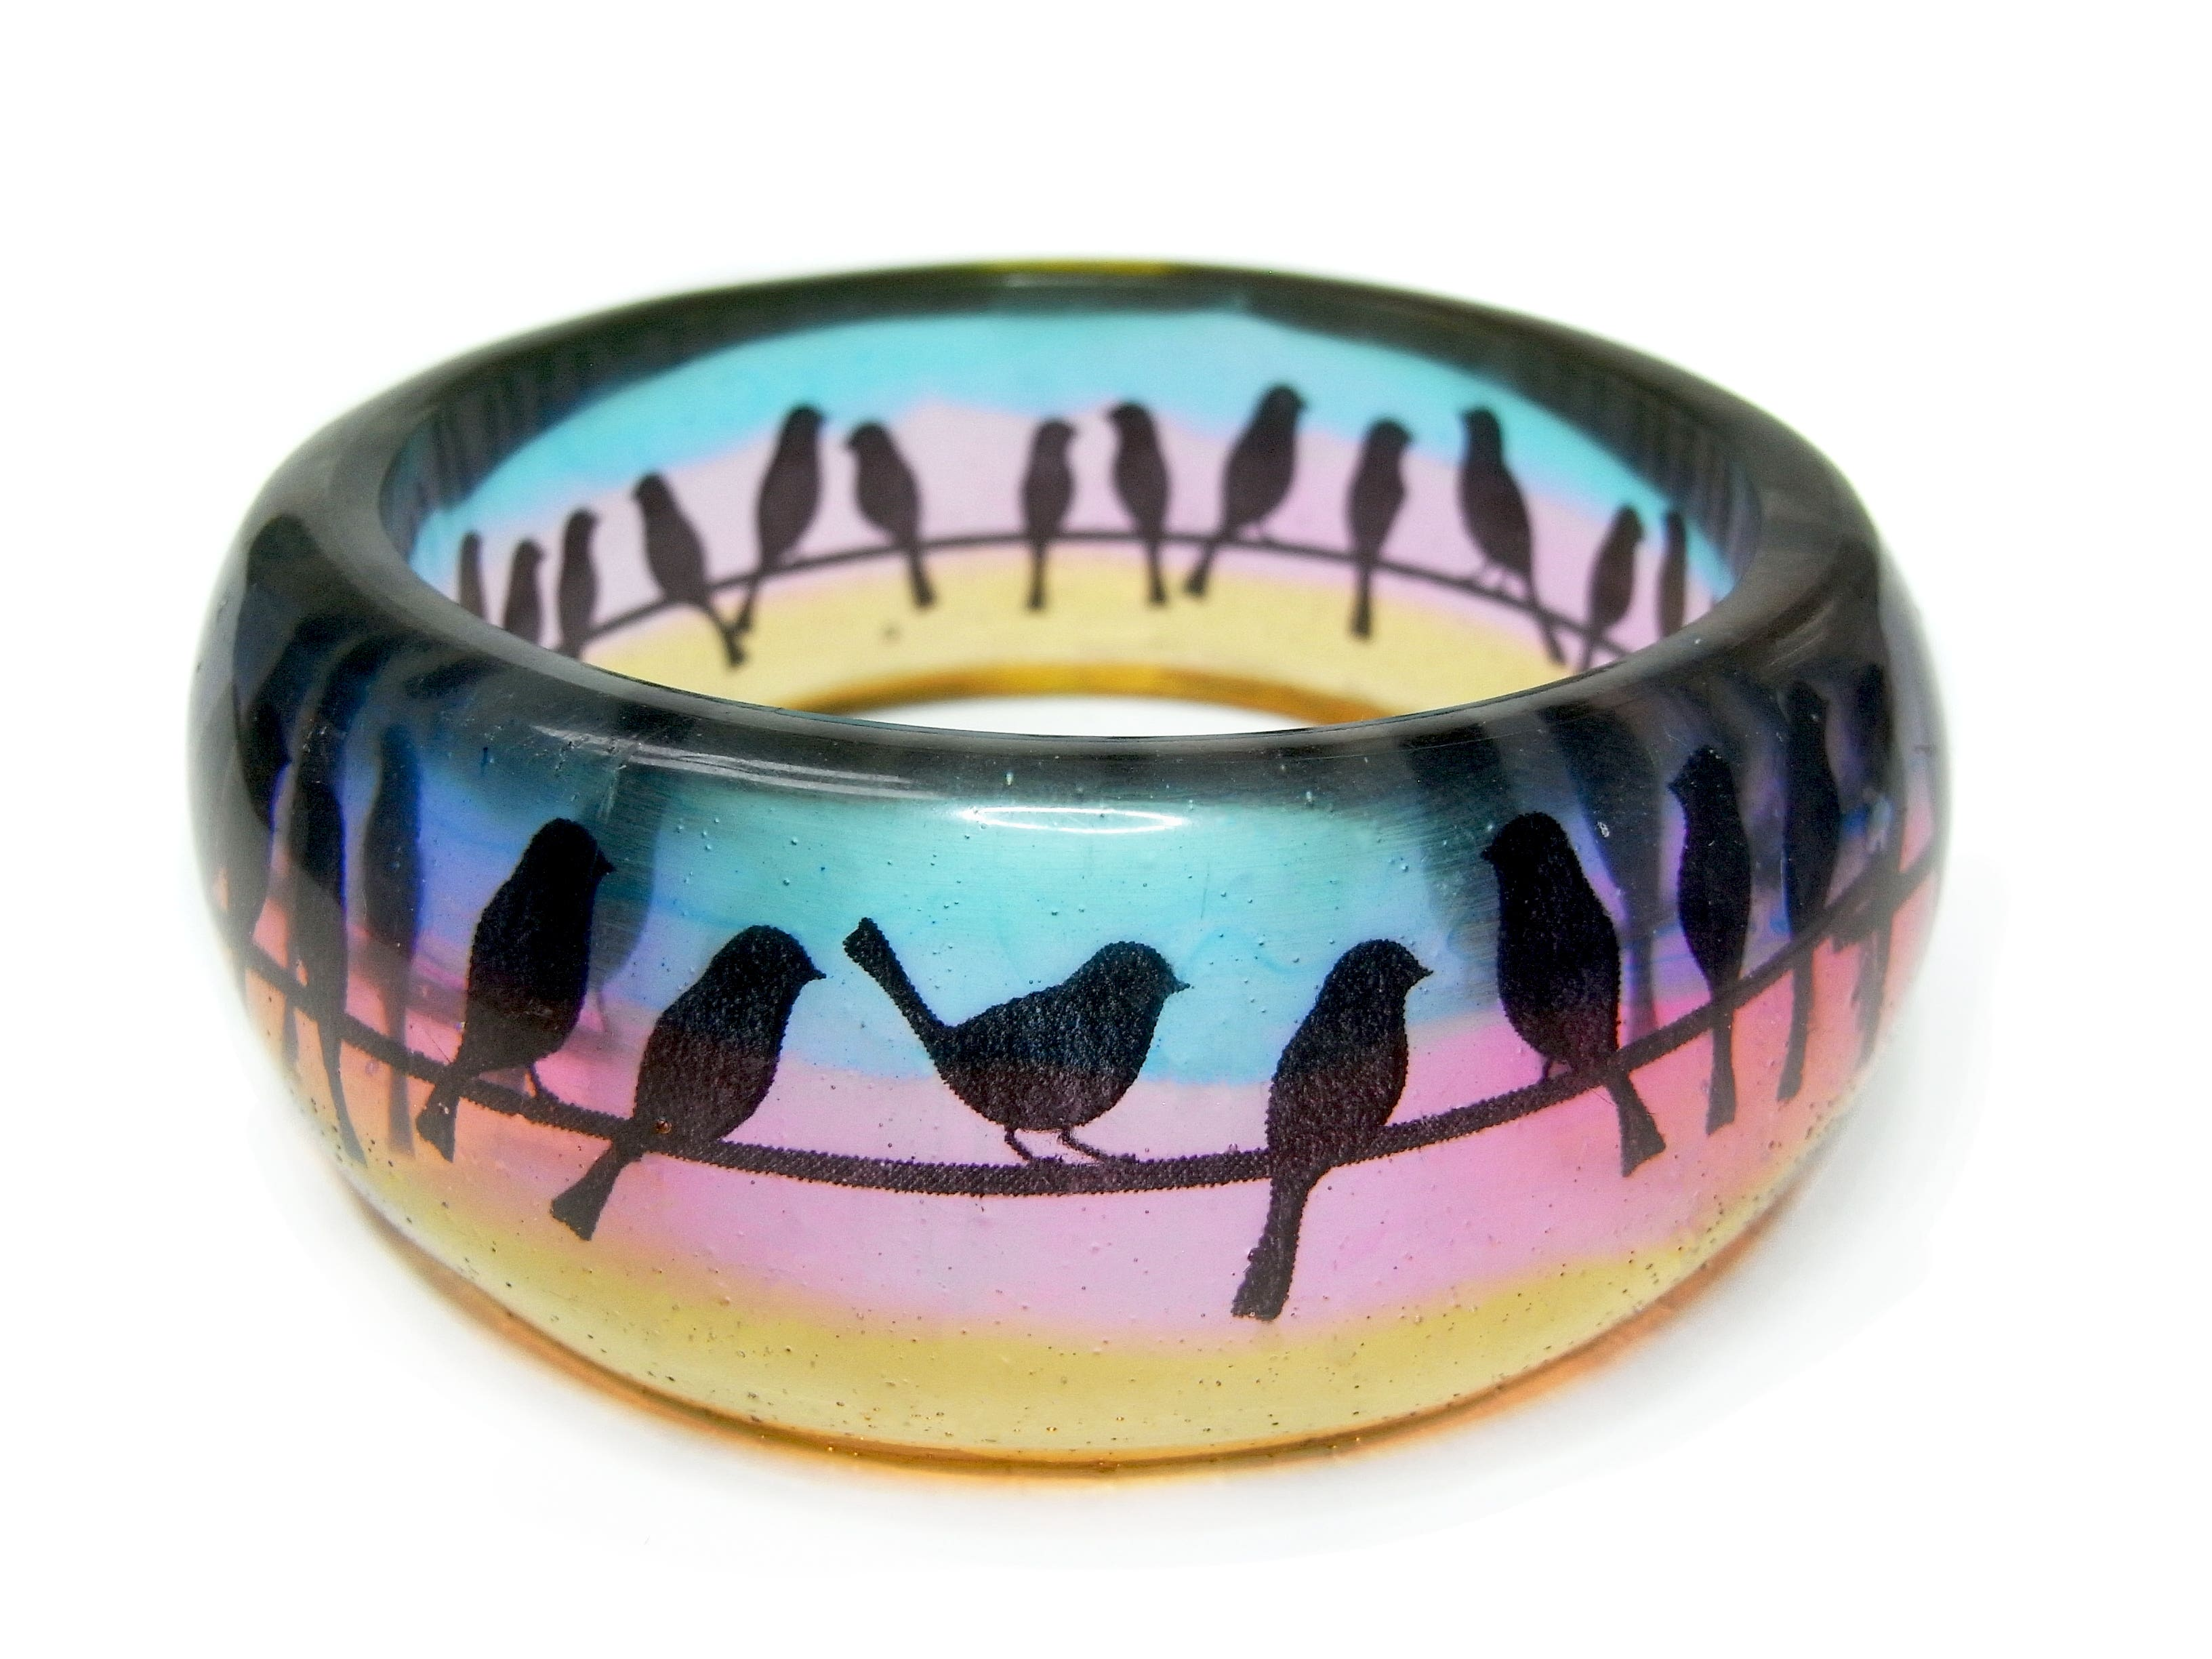 Transparent resin bangle with birds on a wire silhouetted against a gradient background of pink, blue and orange